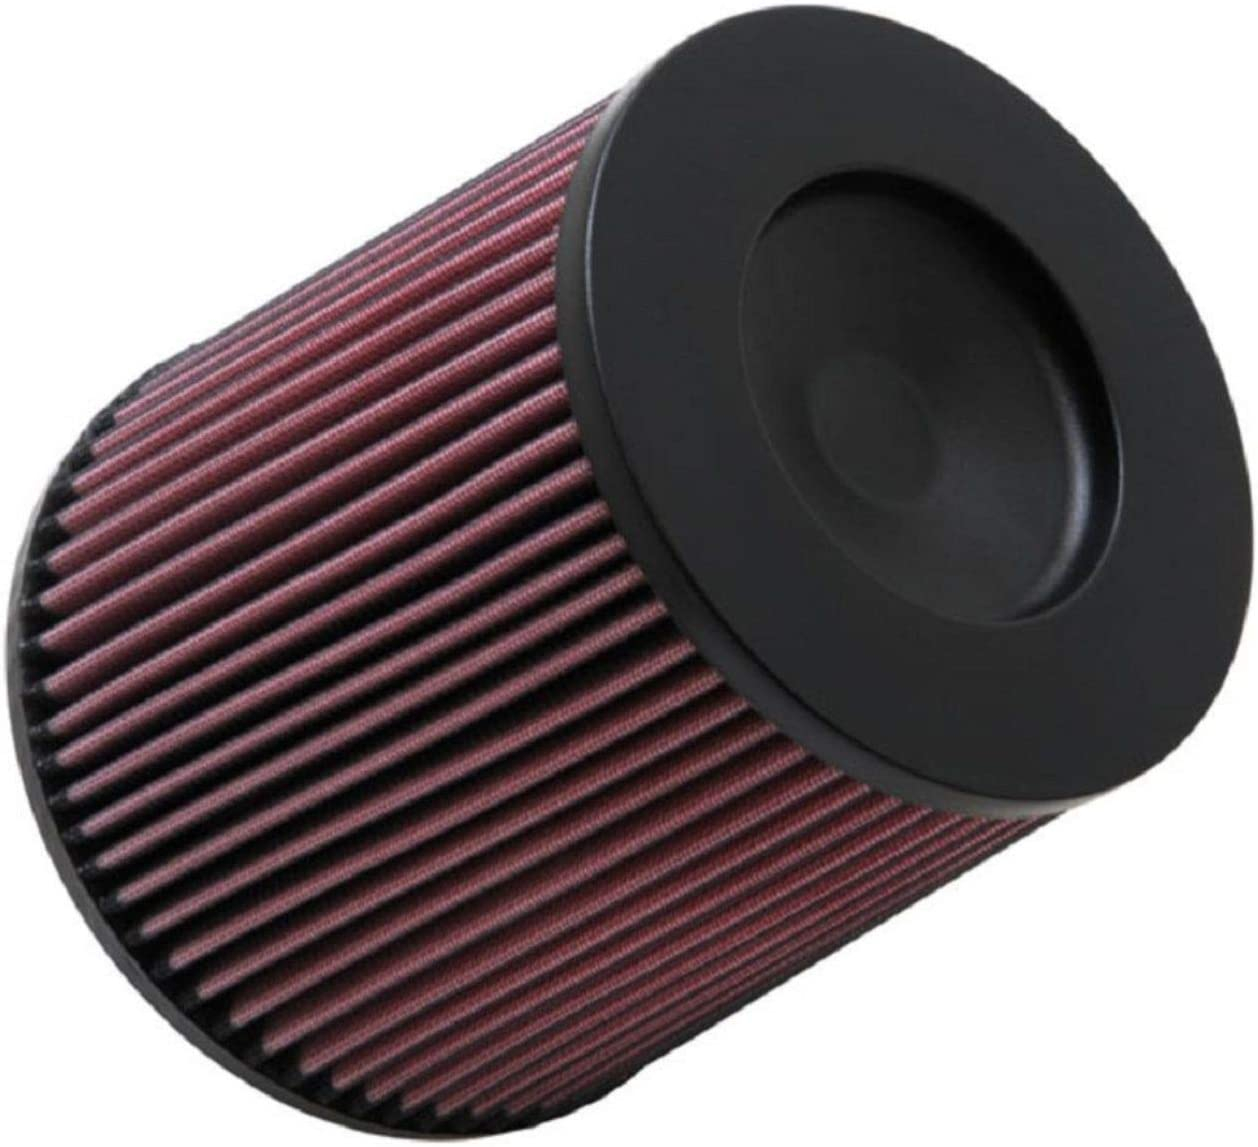 Shape: Round Tapered K/&N Universal Clamp-On Air Filter: High Performance Filter Height: 12 In Flange Length: 1.375 In Premium RC-5166 Washable Replacement Filter: Flange Diameter: 4.5 In